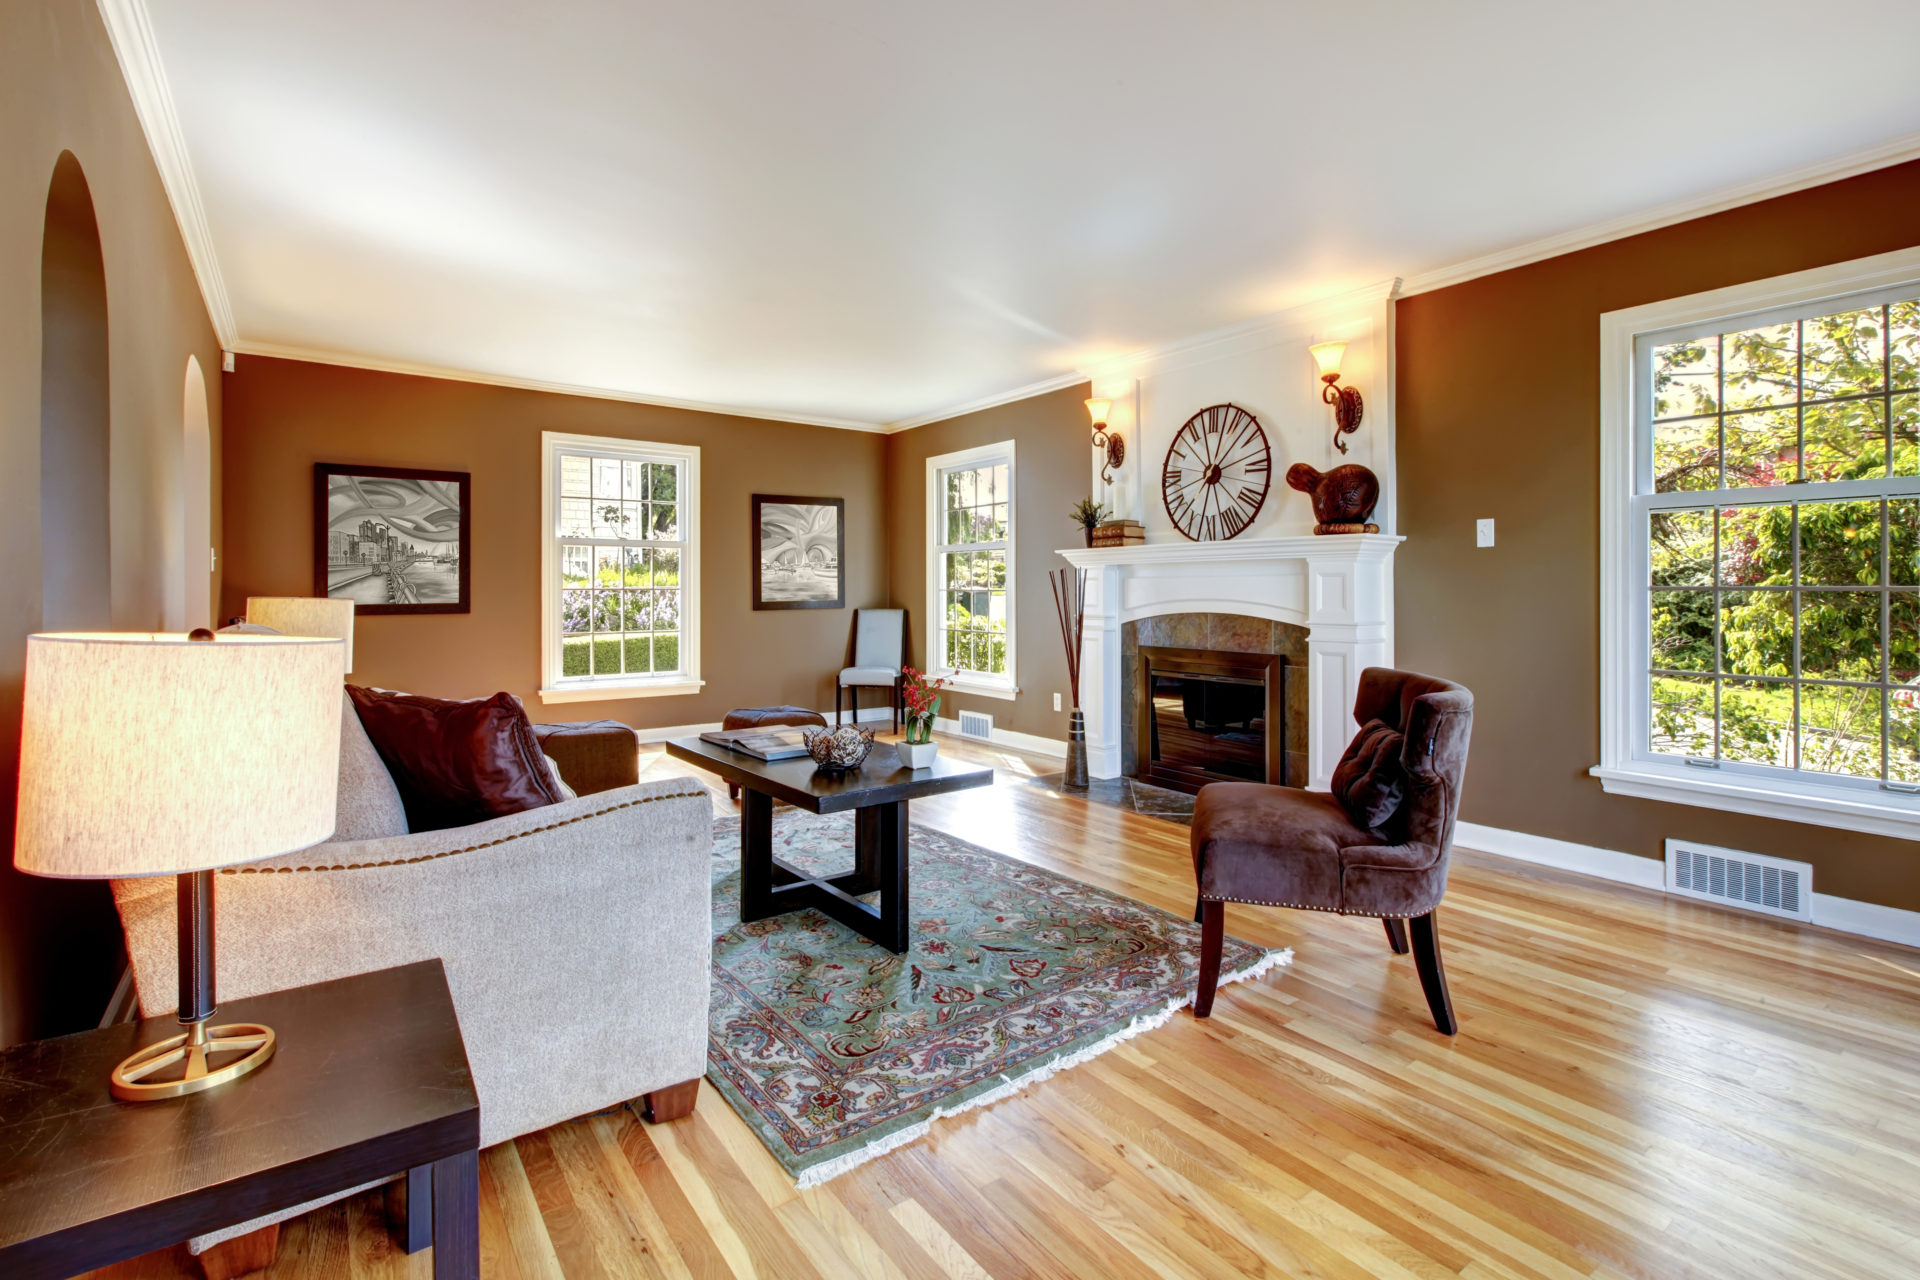 Classic brown and white living room interior with hardwood floor.